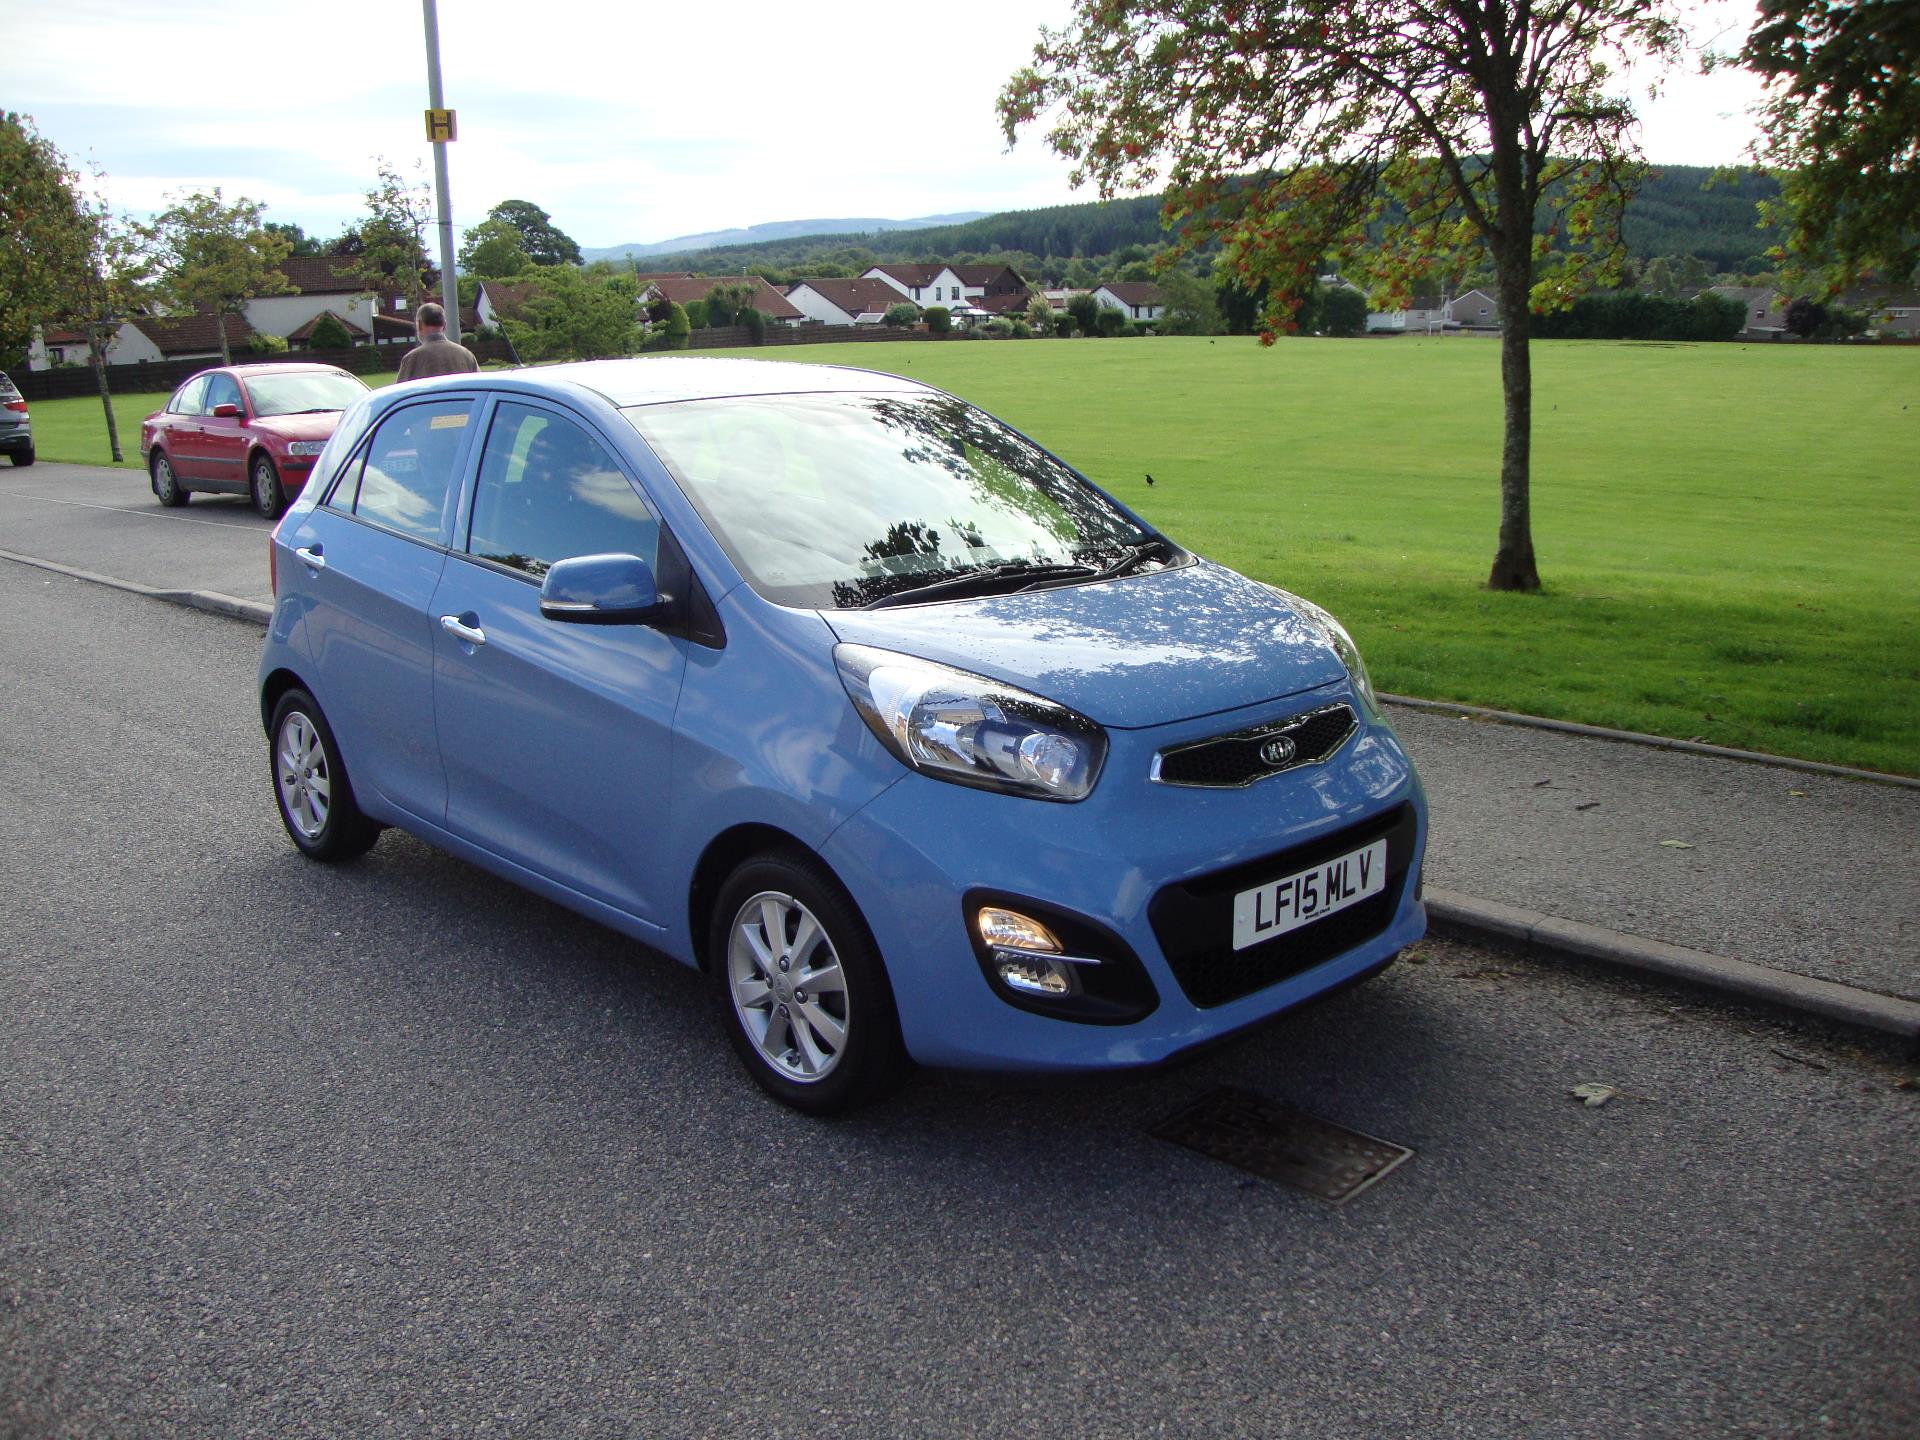 Car for Sale Aberdeen Awesome Used Kia Picanto Cars for Sale In Aberdeen Aberdeenshire